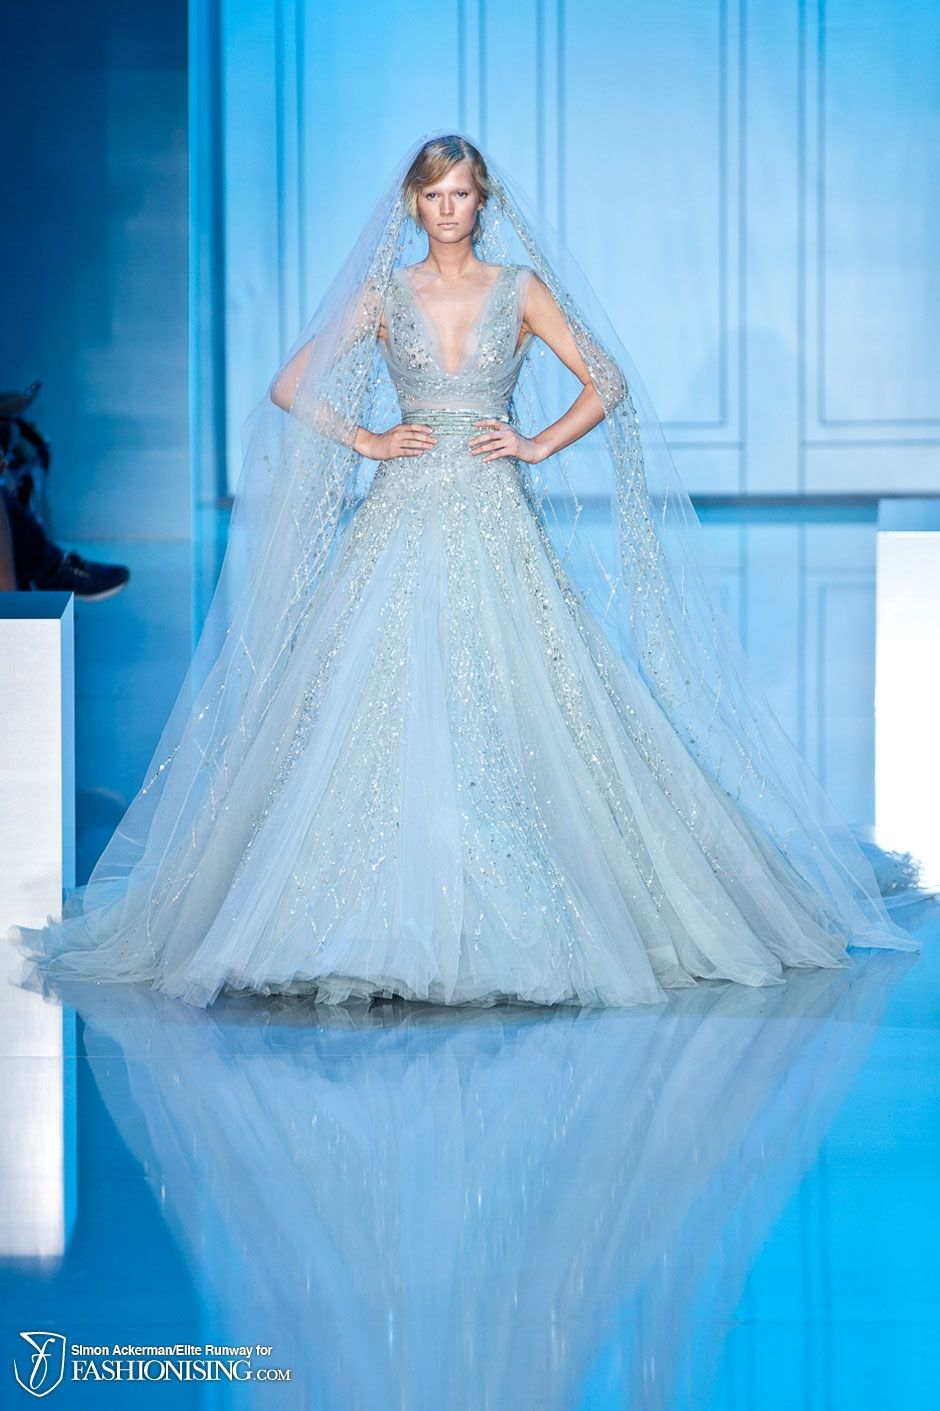 Icequeen couture at elie saab fashionising dress me up